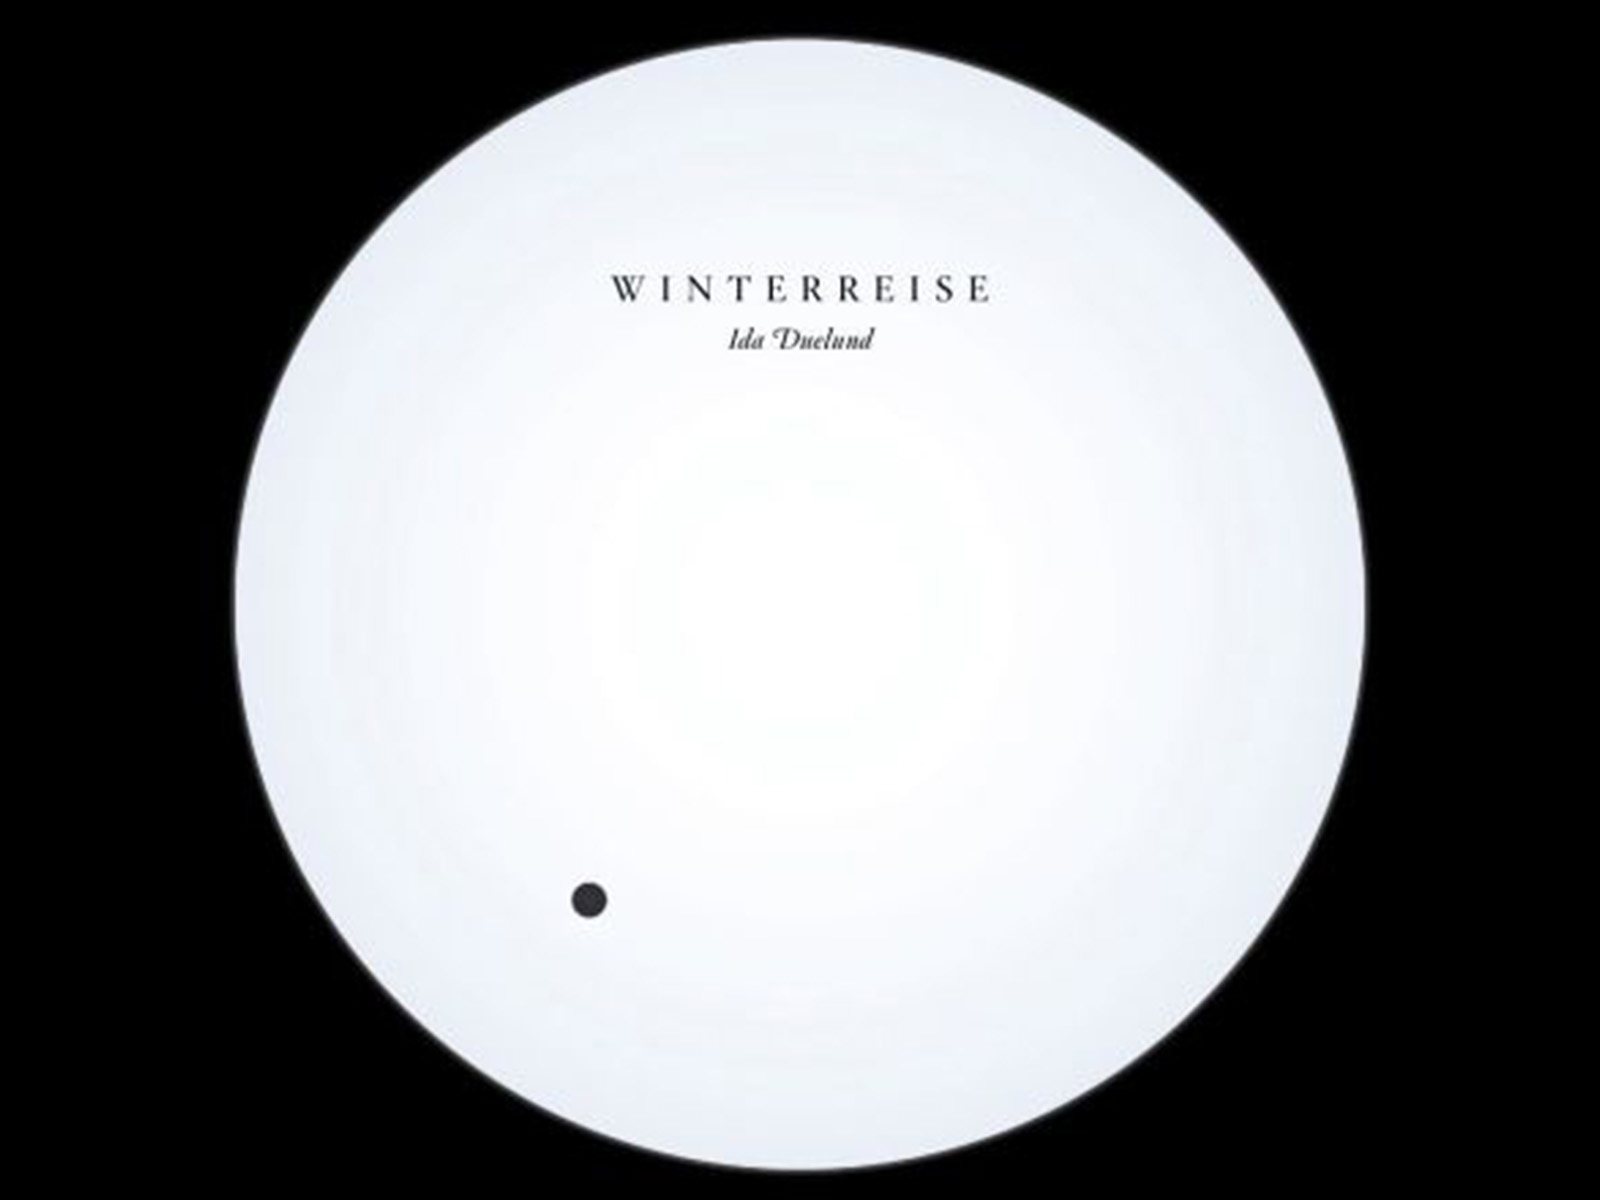 Promo image: a white circle with the words Winterreise Ida Dueland on it set against a black background